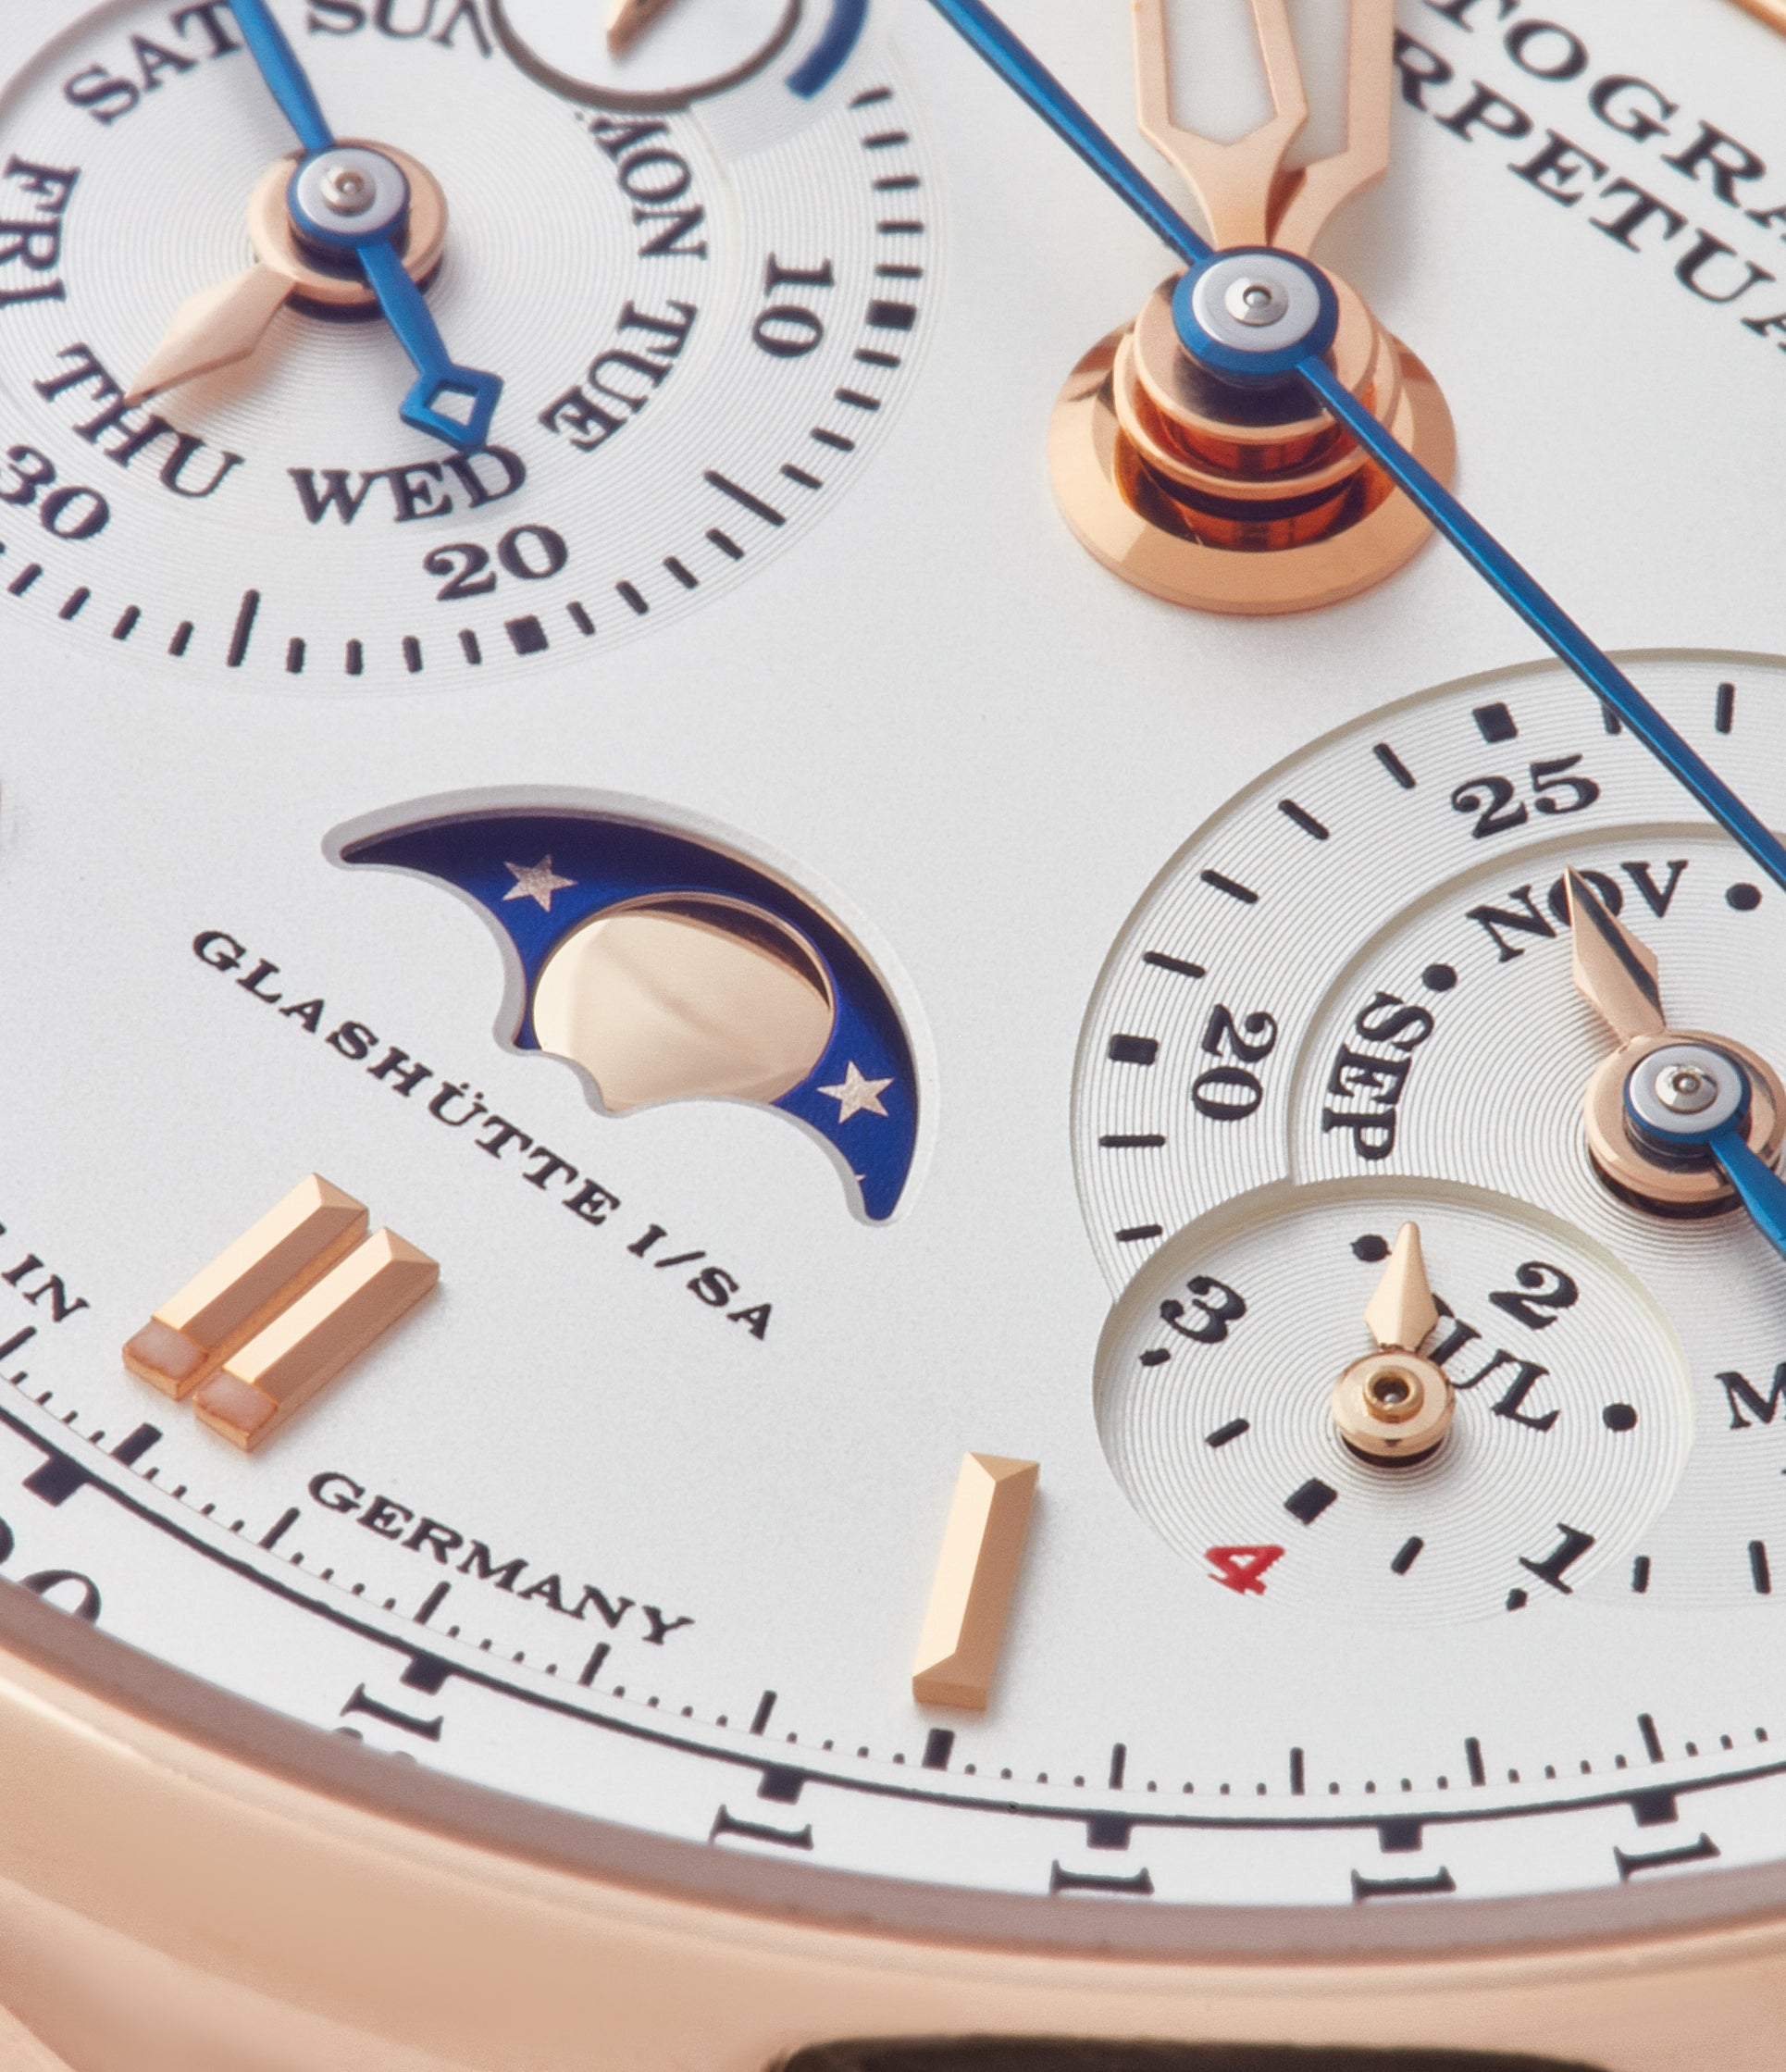 moonphase perpetual calendar A. Lange & Sohne Datograph 410.032 pink gold pre-owned dress watch for sale online at A Collected Man London seller rare watches